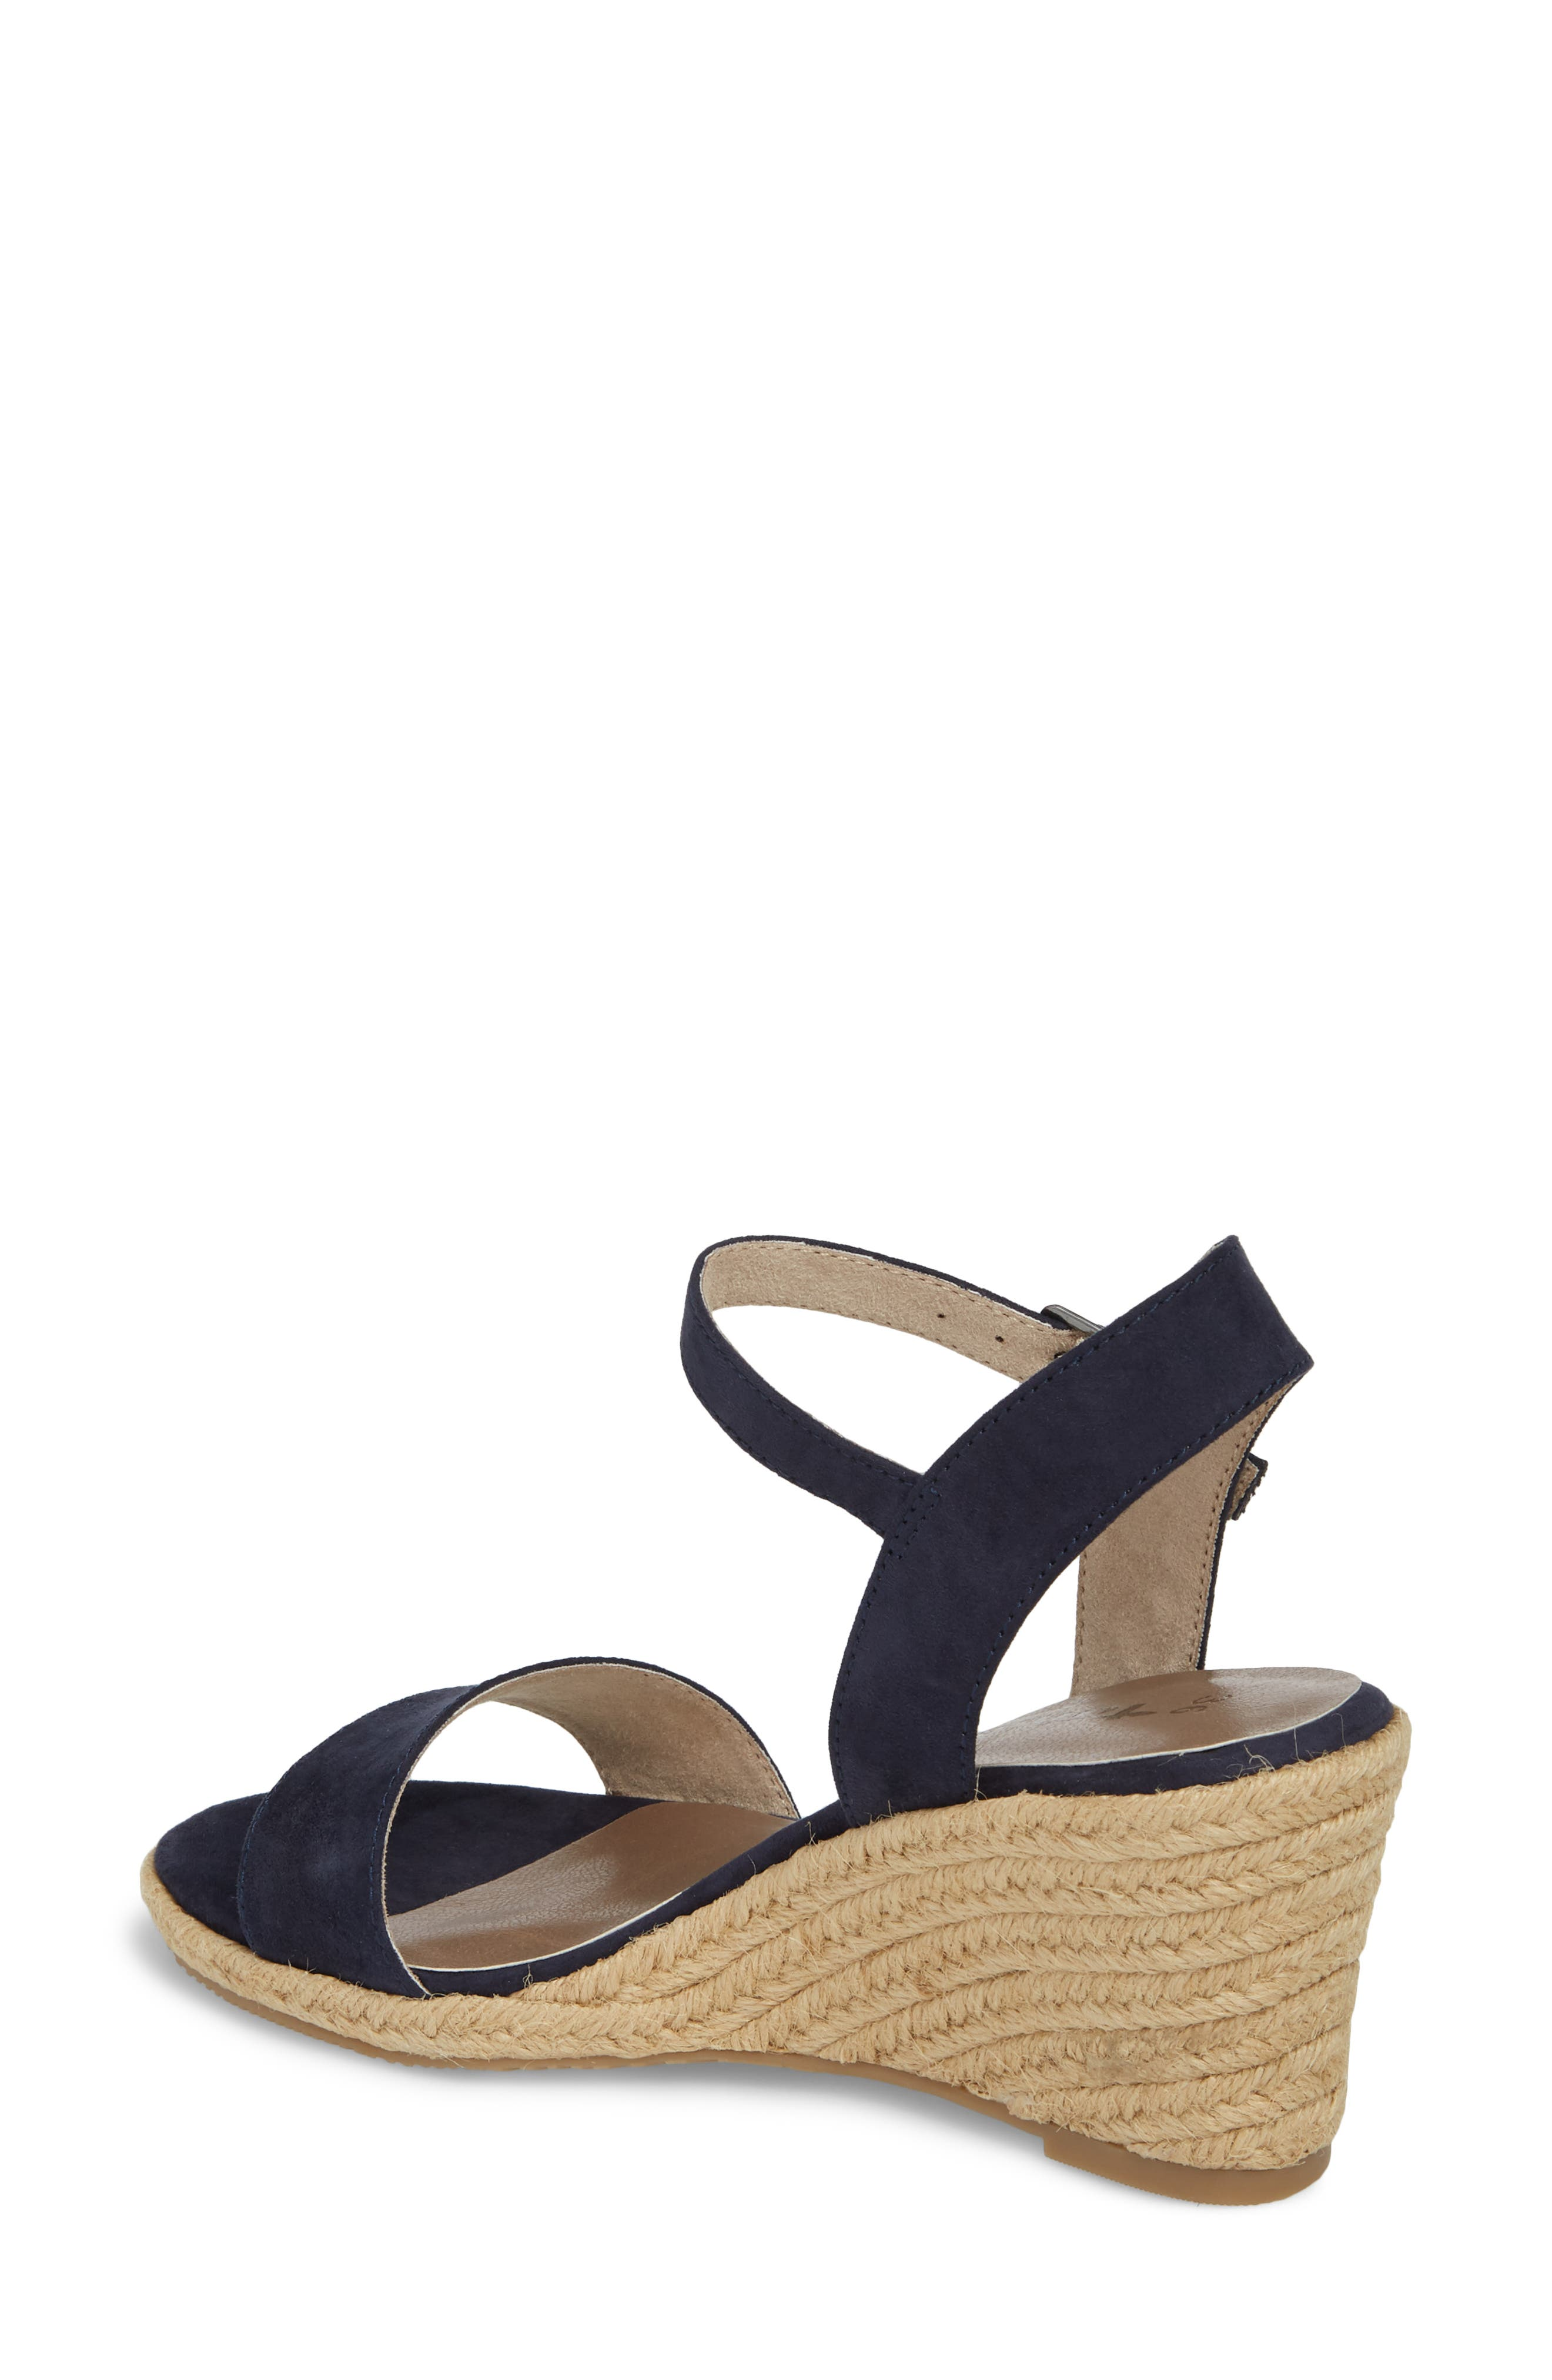 Livia Espadrille Wedge Sandal,                             Alternate thumbnail 2, color,                             NAVY FABRIC